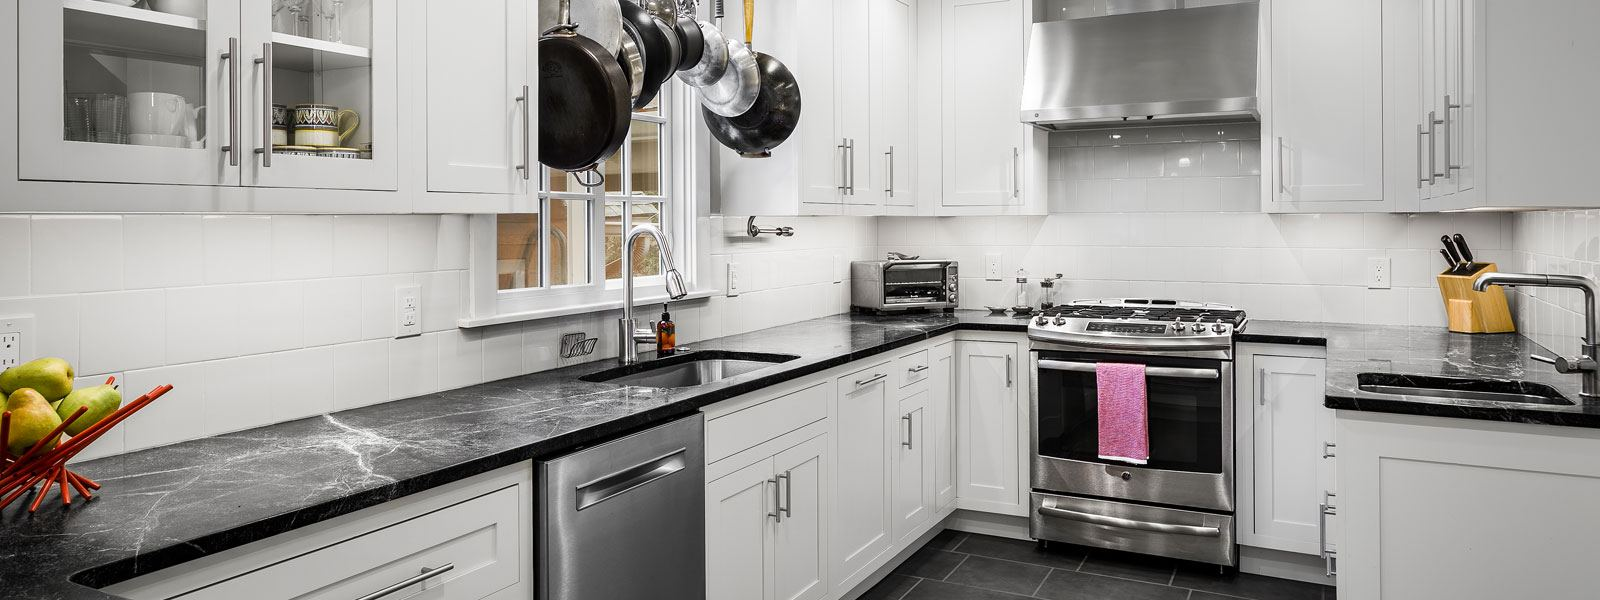 kitchen cabinet ratings reviews top selling cabinet lines kitchen cabinet reviews Here are Main Line Kitchen Design s rankings for the top selling kitchen cabinet companies in the United States All the designers that gave us input on the